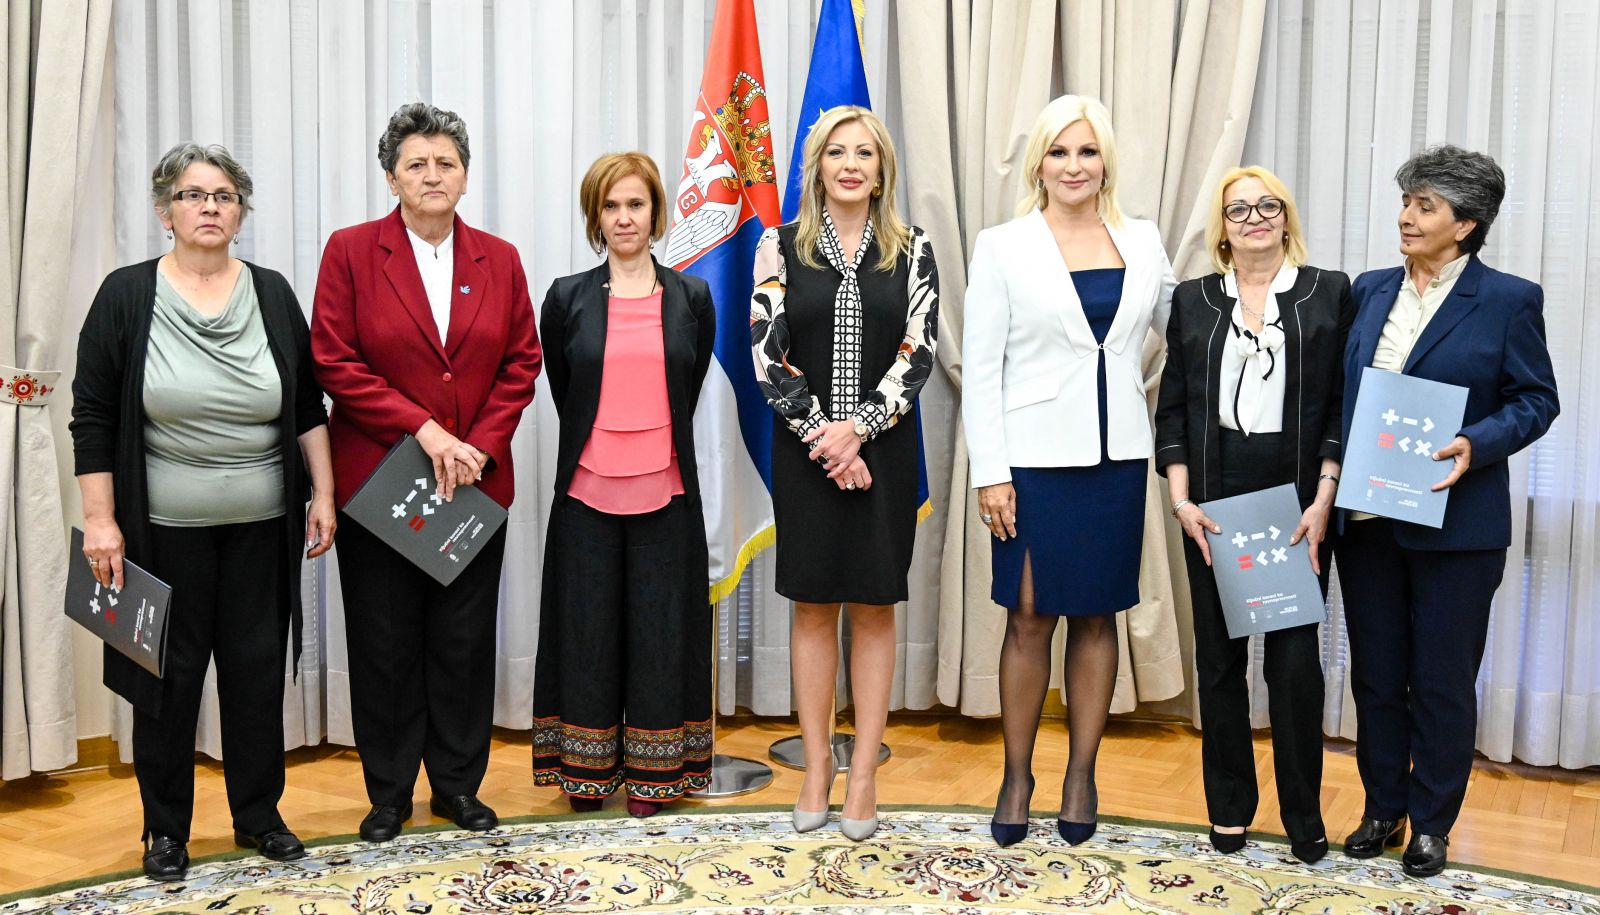 J. Joksimović: Serbia follows EU trends in gender equality